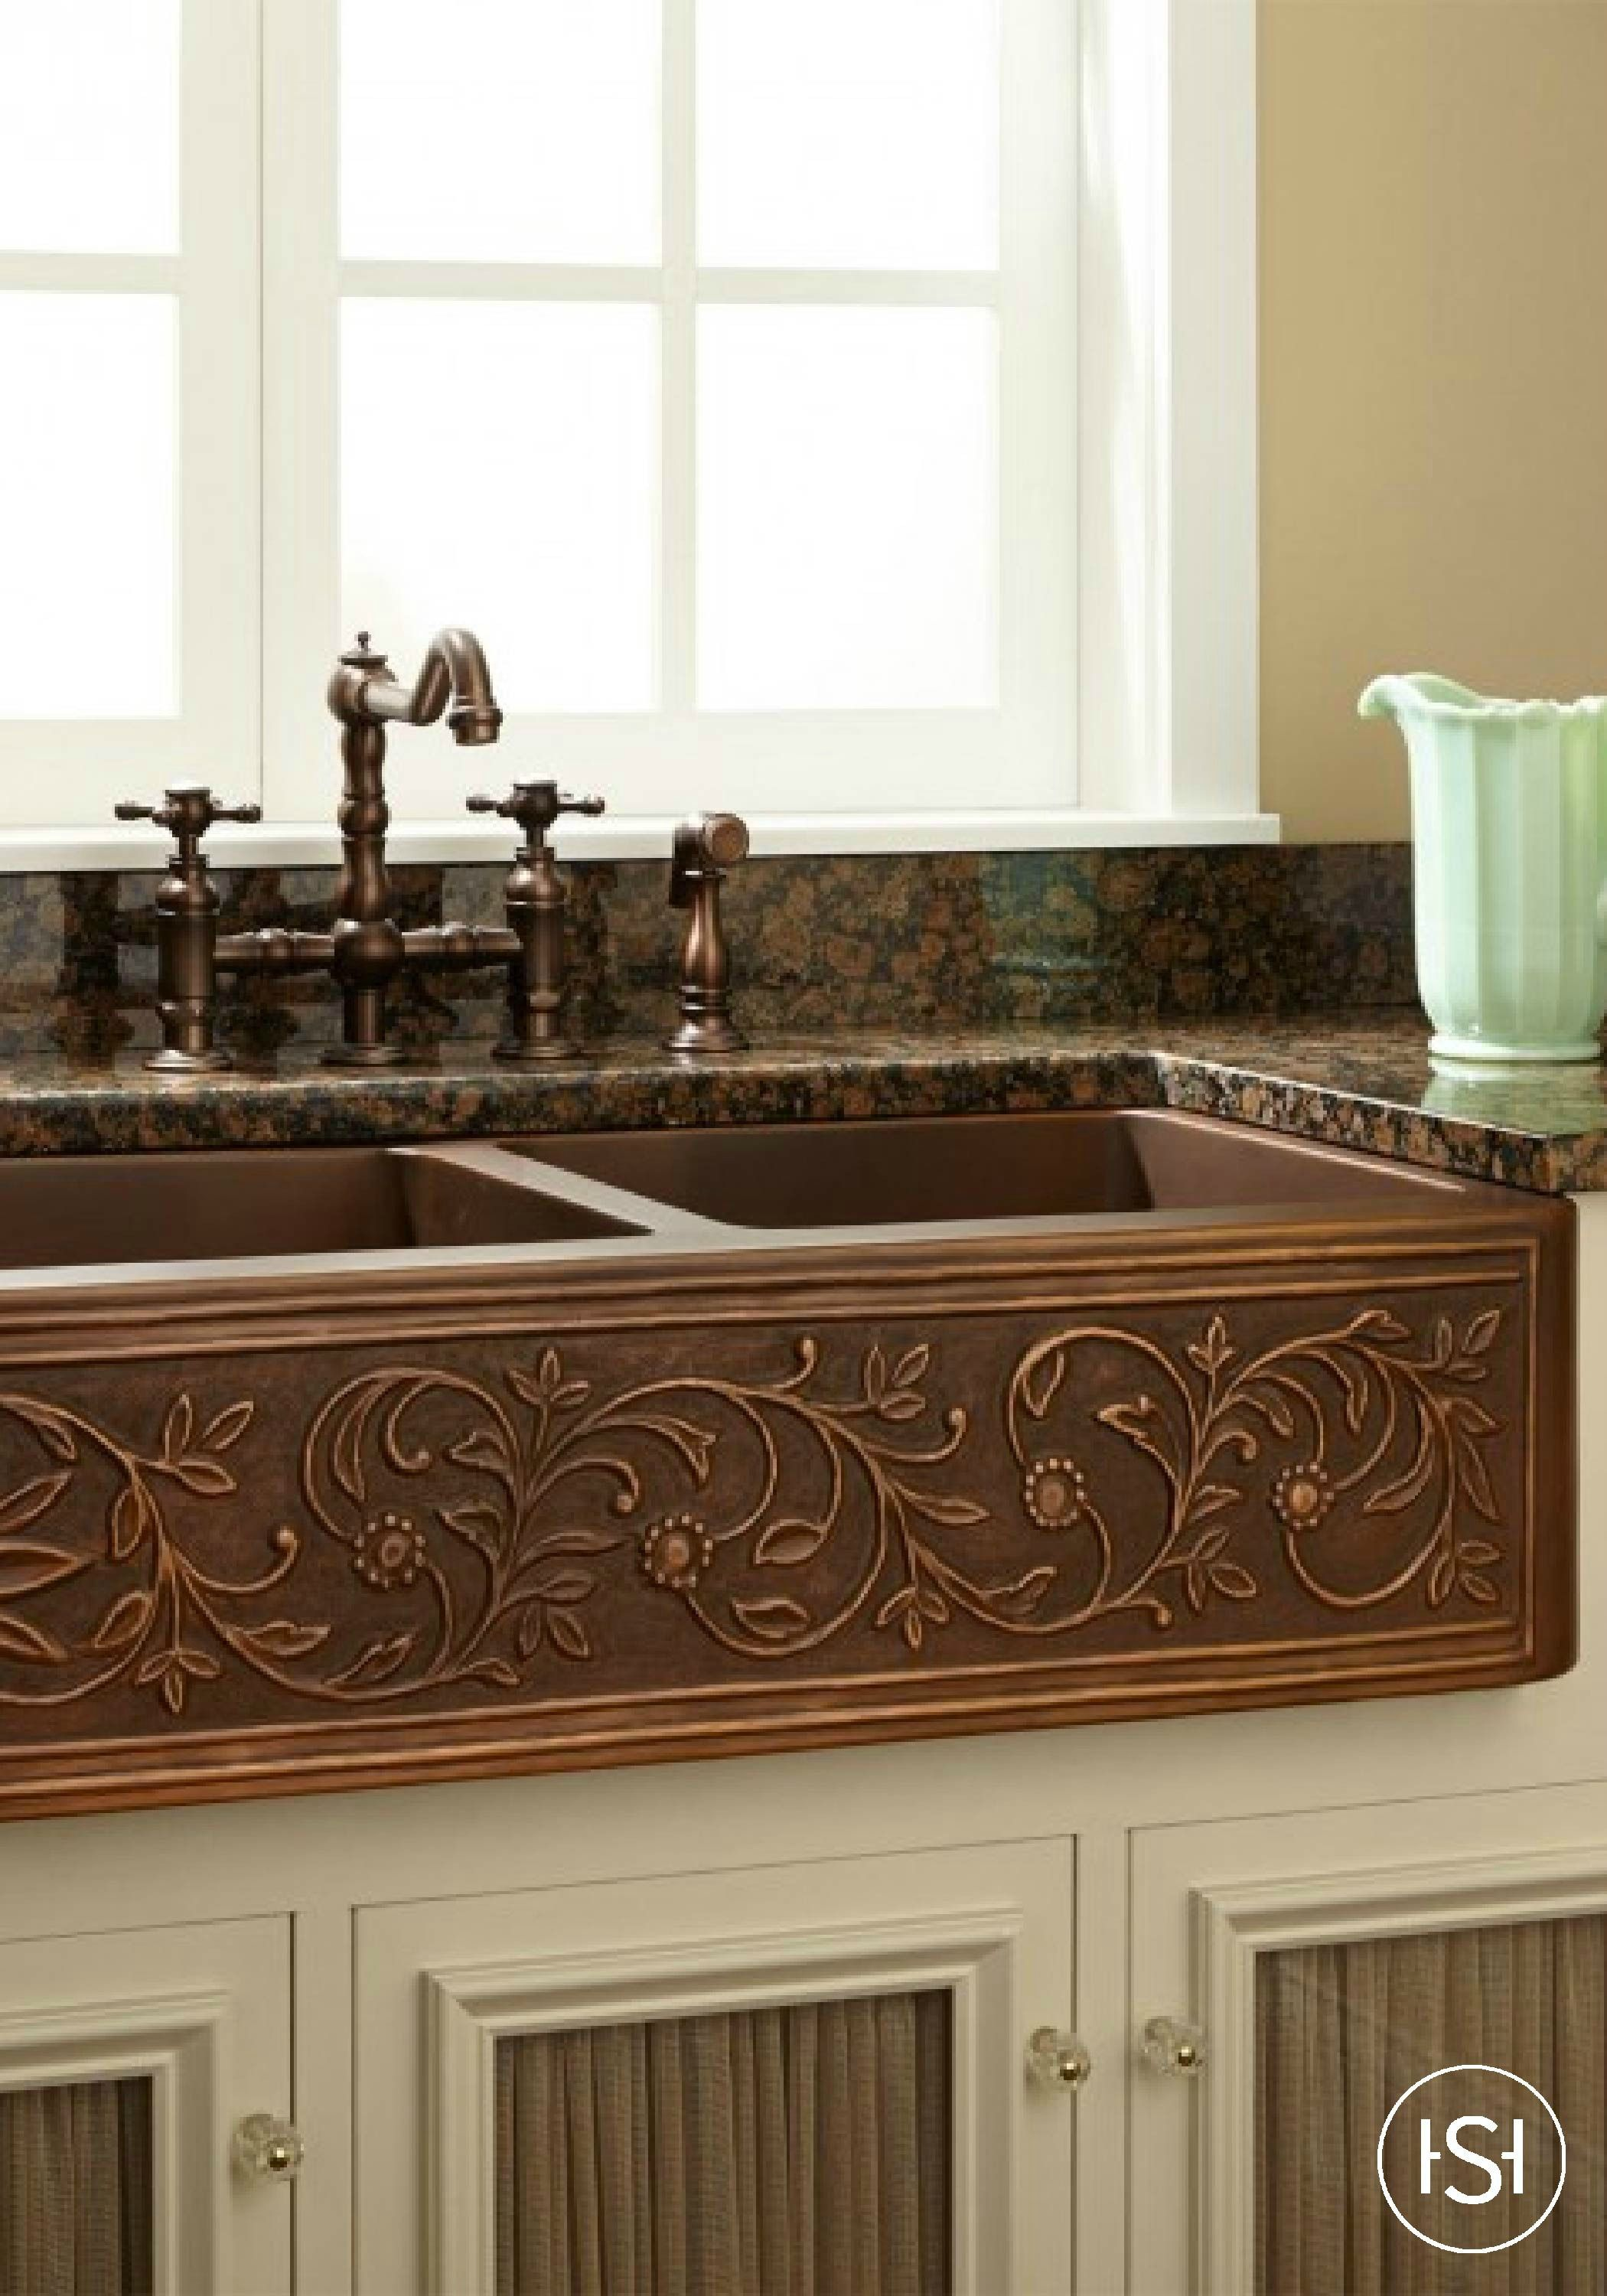 Standout Farmhouse Designs 36 Quot Vine Design Double Bowl Copper Farmhouse Sink The